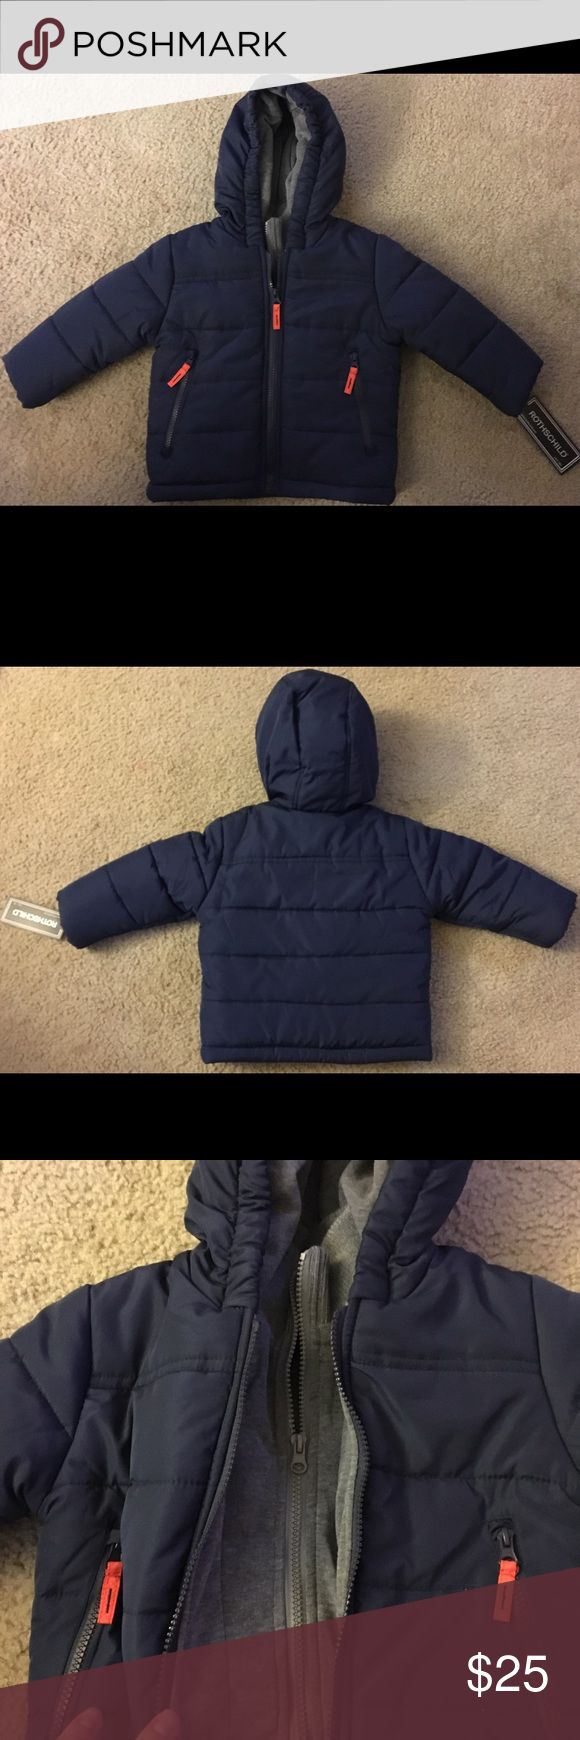 Rothschild 24 Month Boys Winter Coat Brand new, still in plastic! Winter coat sized 24 months. Has fleece inner lining. Rothschild Jackets & Coats Puffers